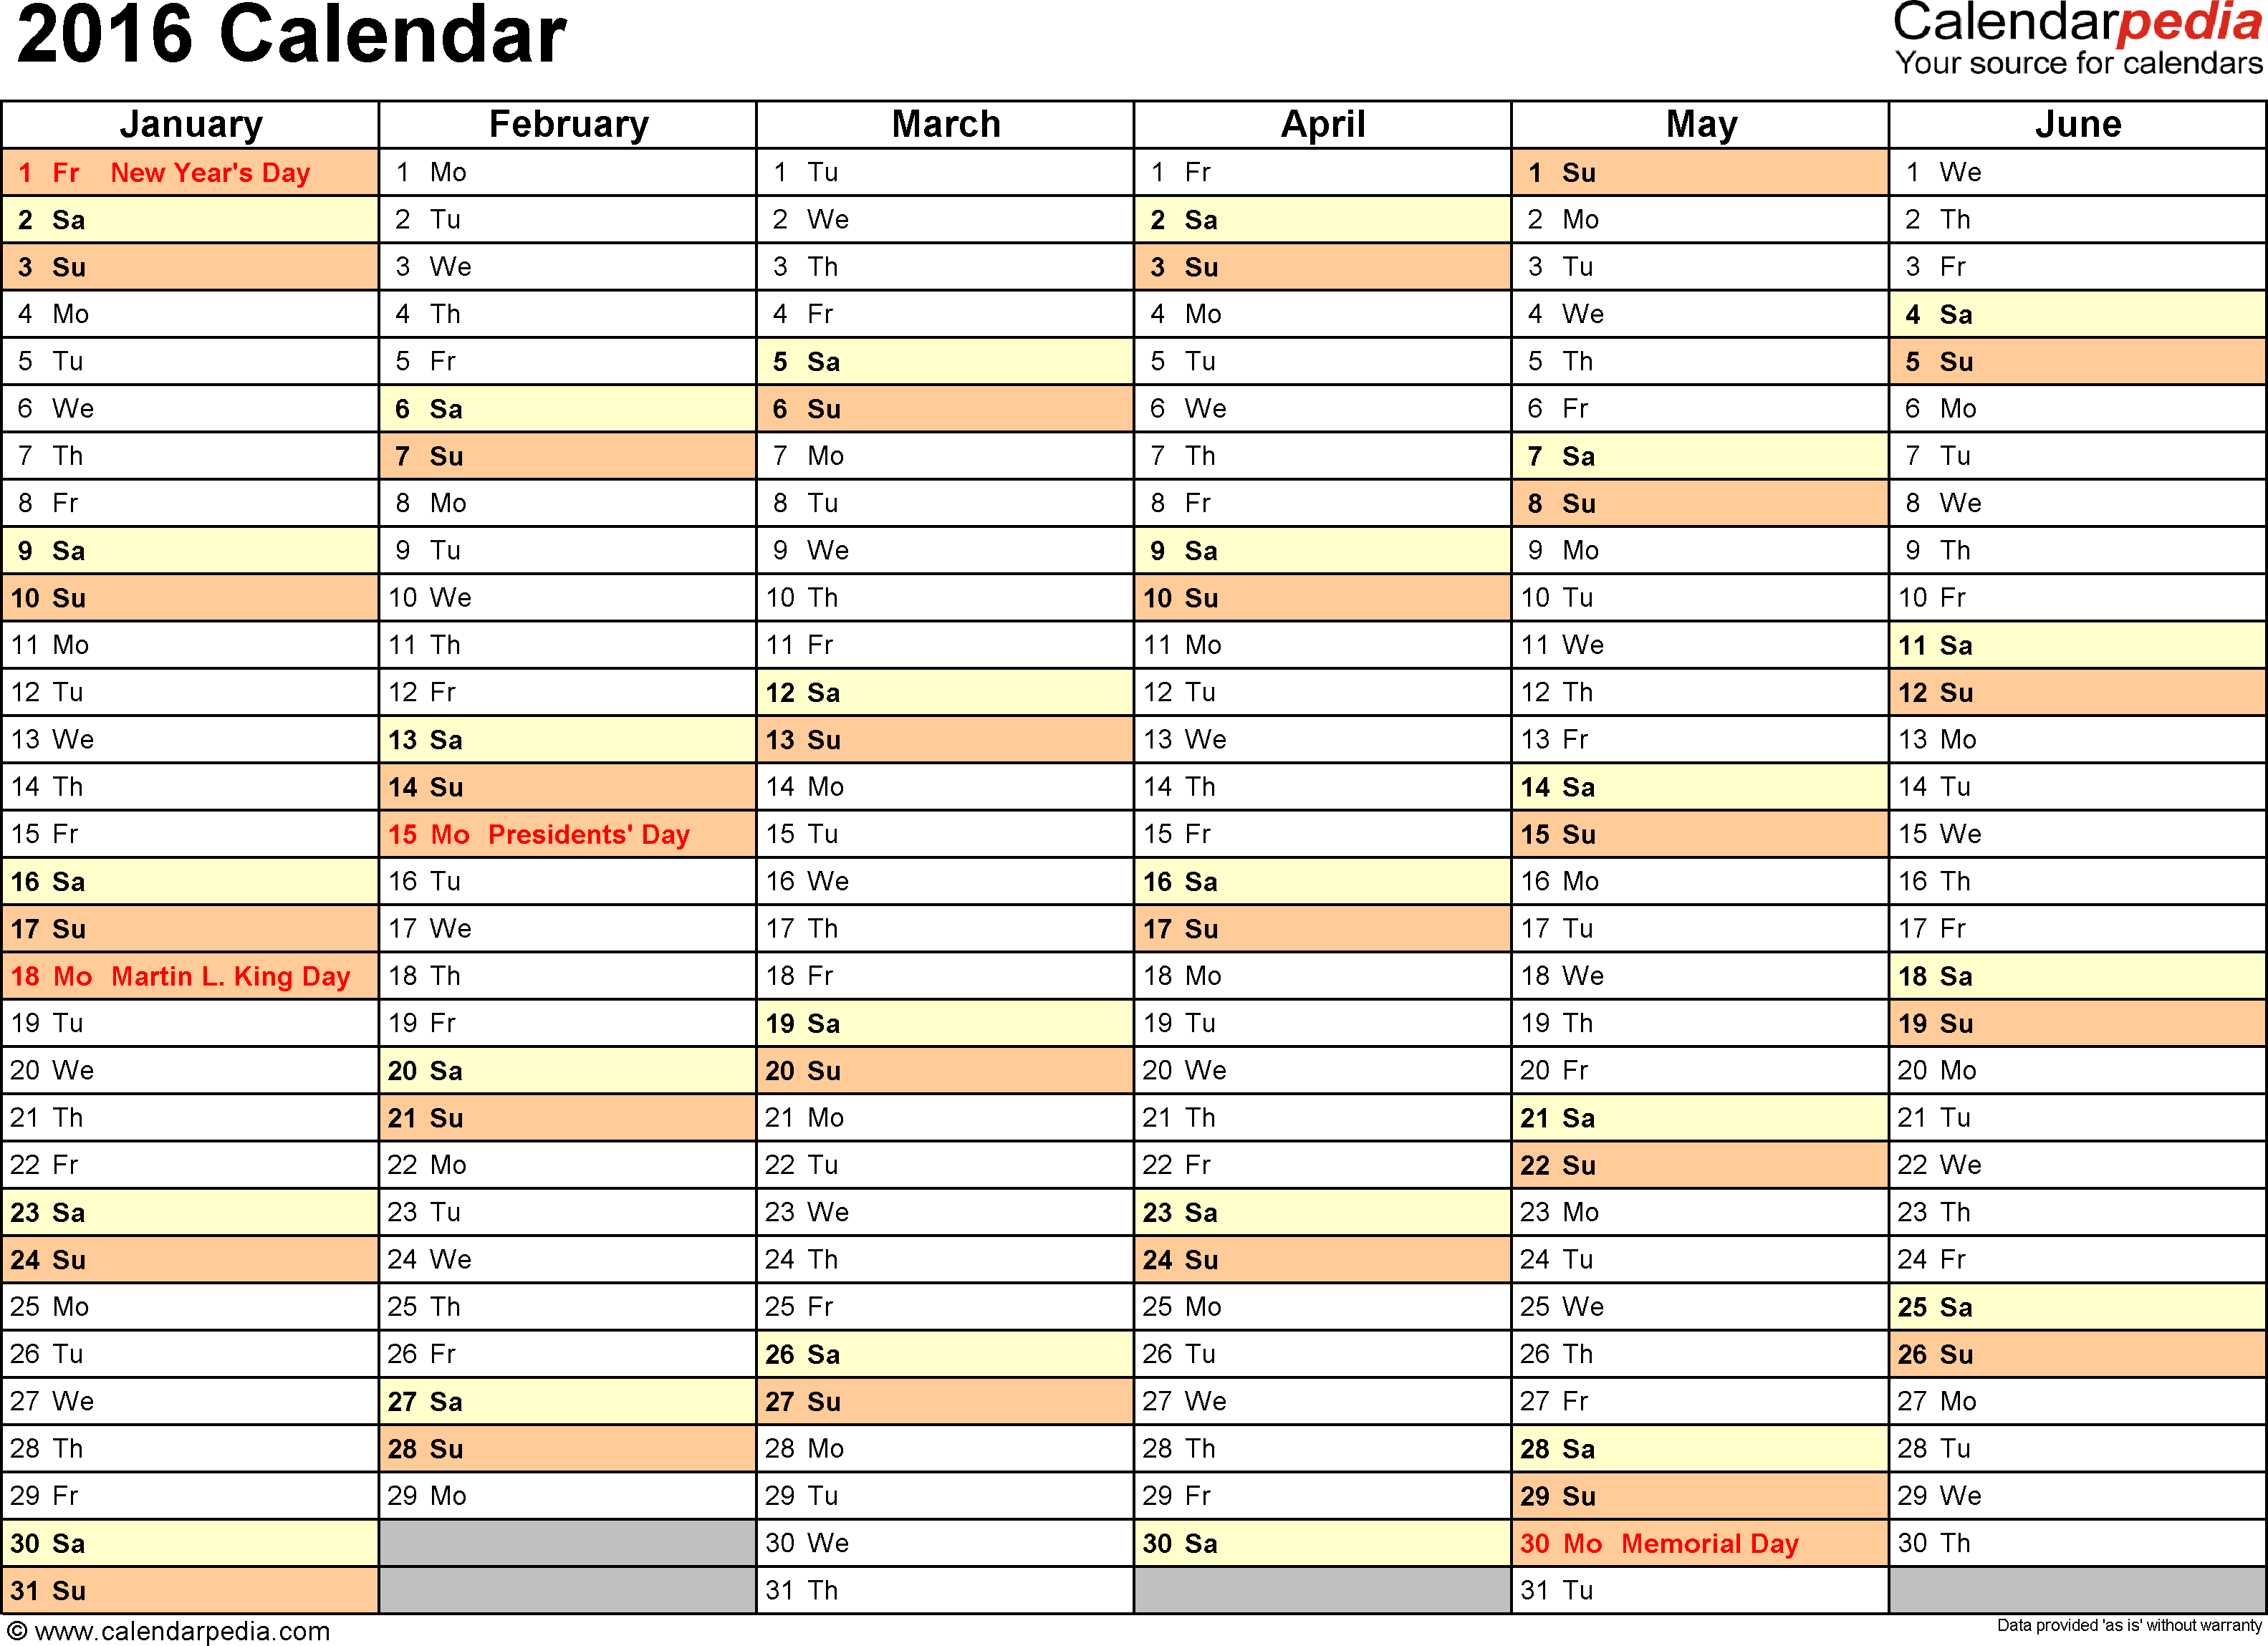 Ediblewildsus  Winsome  Calendar  Download  Free Printable Excel Templates Xls With Exciting Template   Calendar For Excel Months Horizontally  Pages Landscape Orientation With Extraordinary Excel To Project Also What Does This Excel Formula Mean In Addition Osha  Form Excel And Sharepoint To Excel As Well As How Do You Add Up Columns In Excel Additionally Auto Number Rows In Excel From Calendarpediacom With Ediblewildsus  Exciting  Calendar  Download  Free Printable Excel Templates Xls With Extraordinary Template   Calendar For Excel Months Horizontally  Pages Landscape Orientation And Winsome Excel To Project Also What Does This Excel Formula Mean In Addition Osha  Form Excel From Calendarpediacom